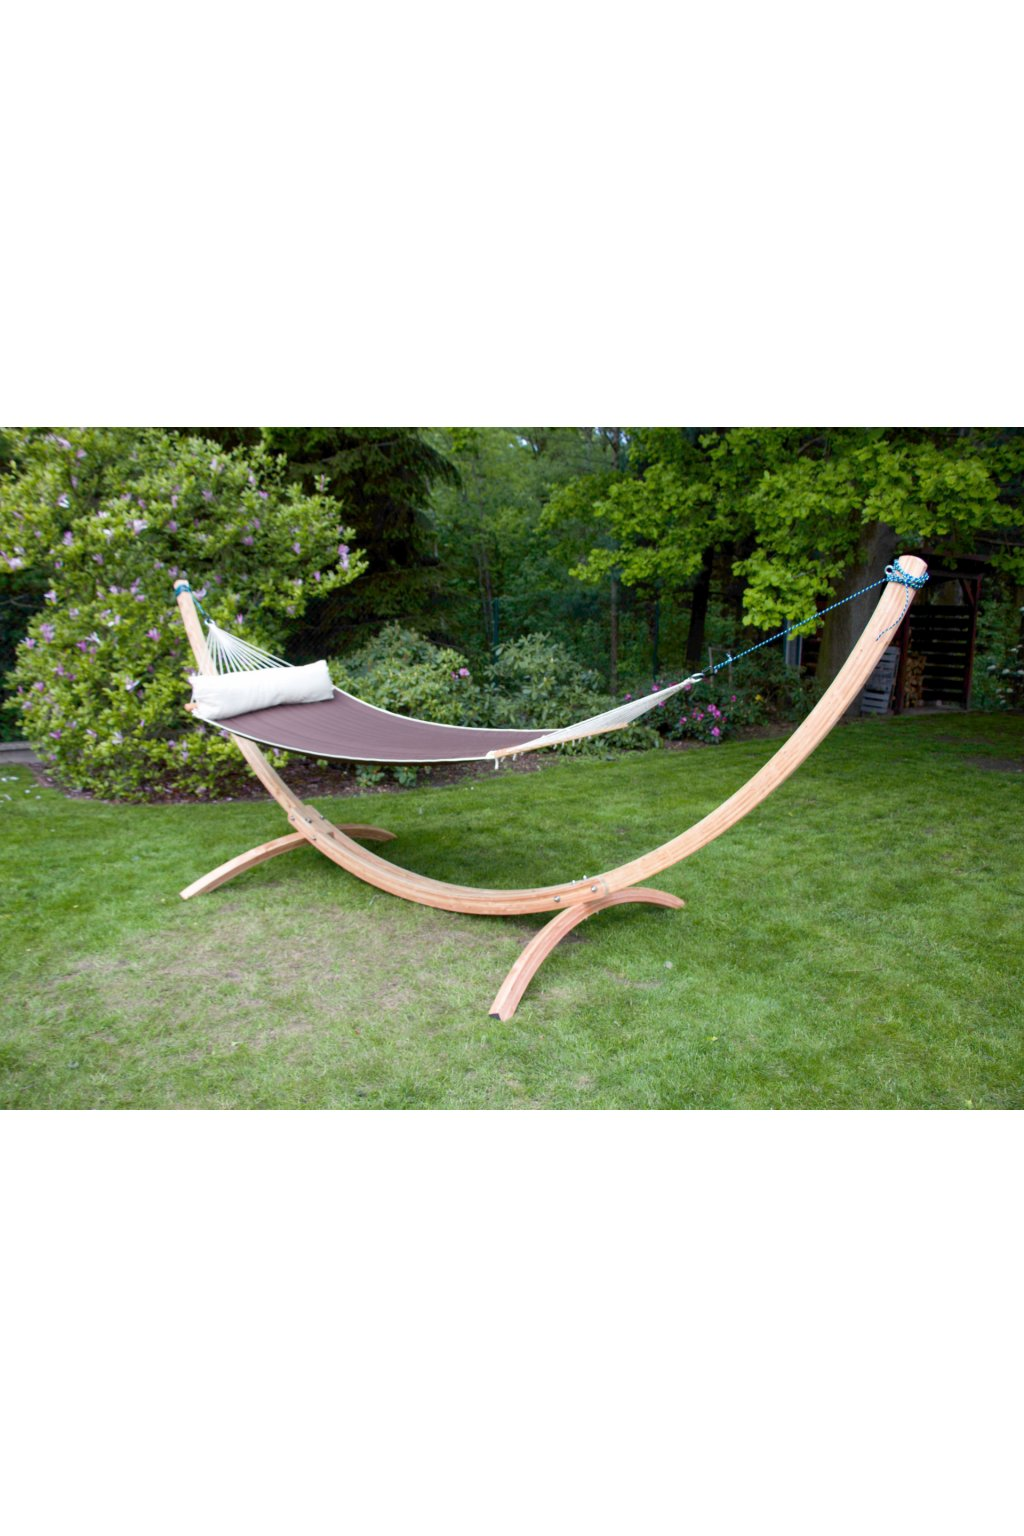 Quilted hammocks Brown